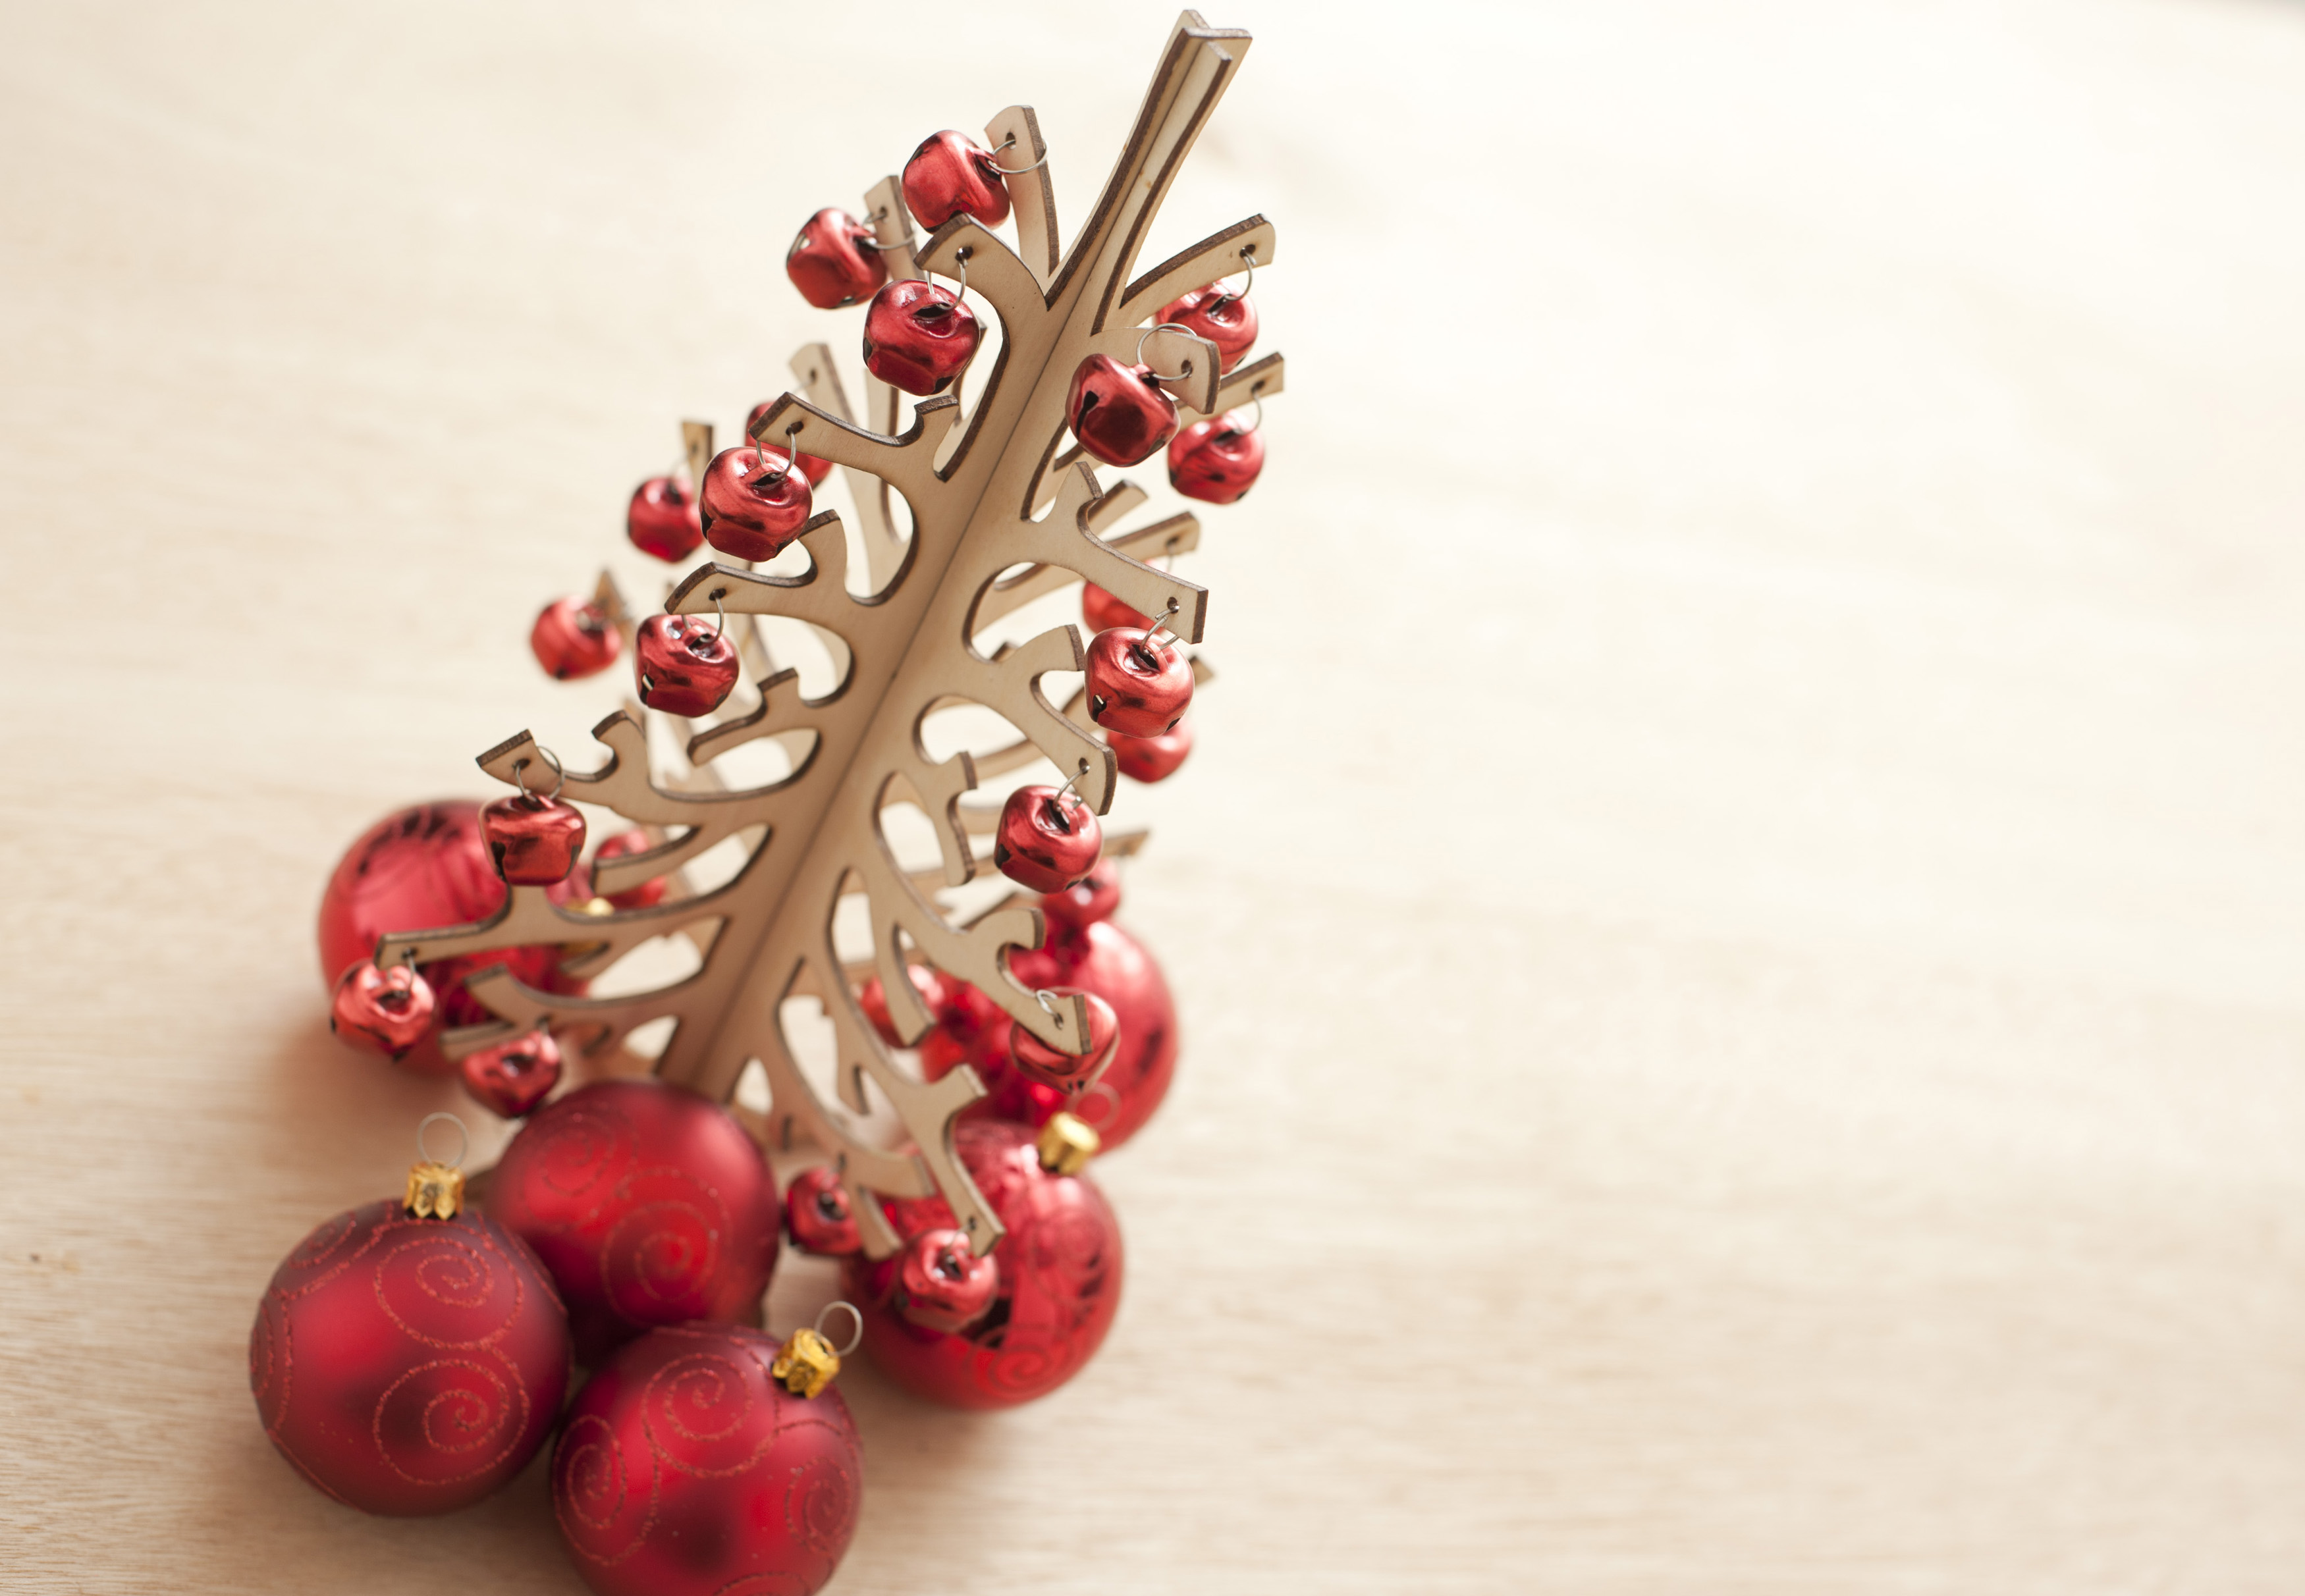 Modern Christmas Trees Decorated.Free Stock Photo 11707 Modern Christmas Tree Decoration